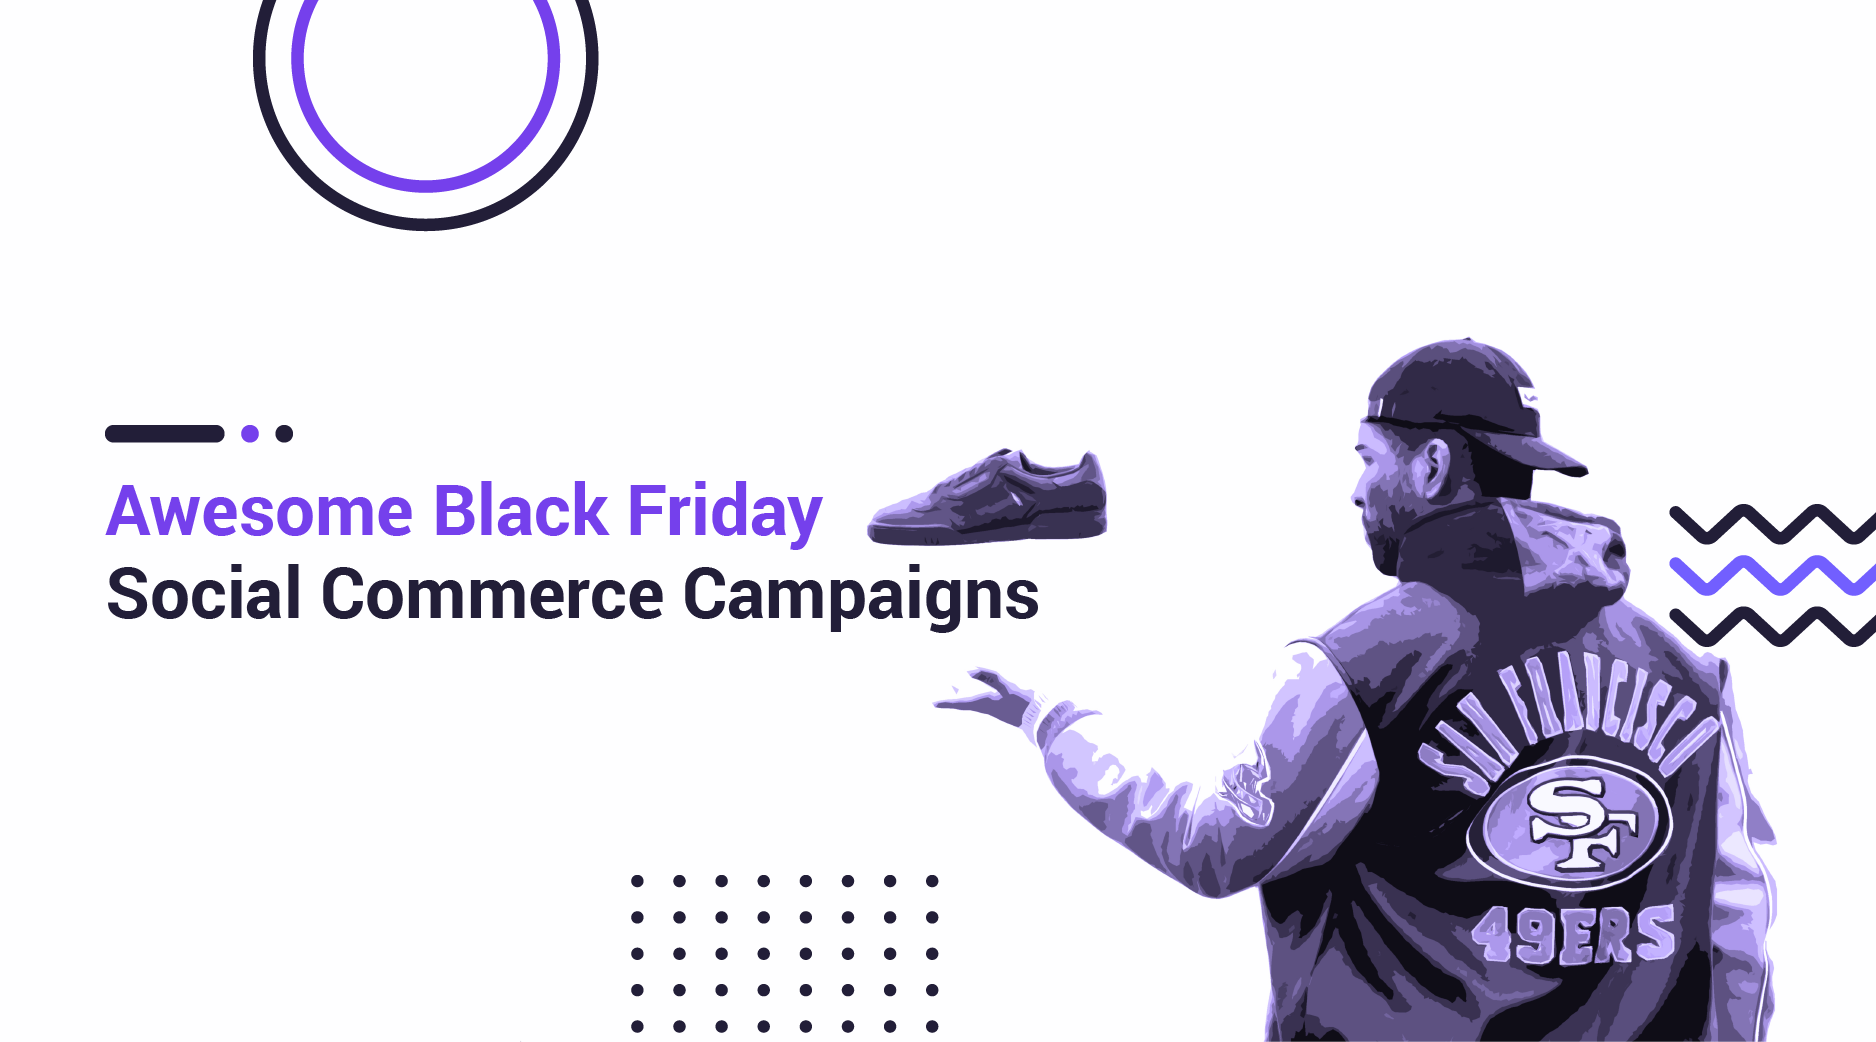 8 Black Friday Social Commerce Campaigns that Drive Huge Sales